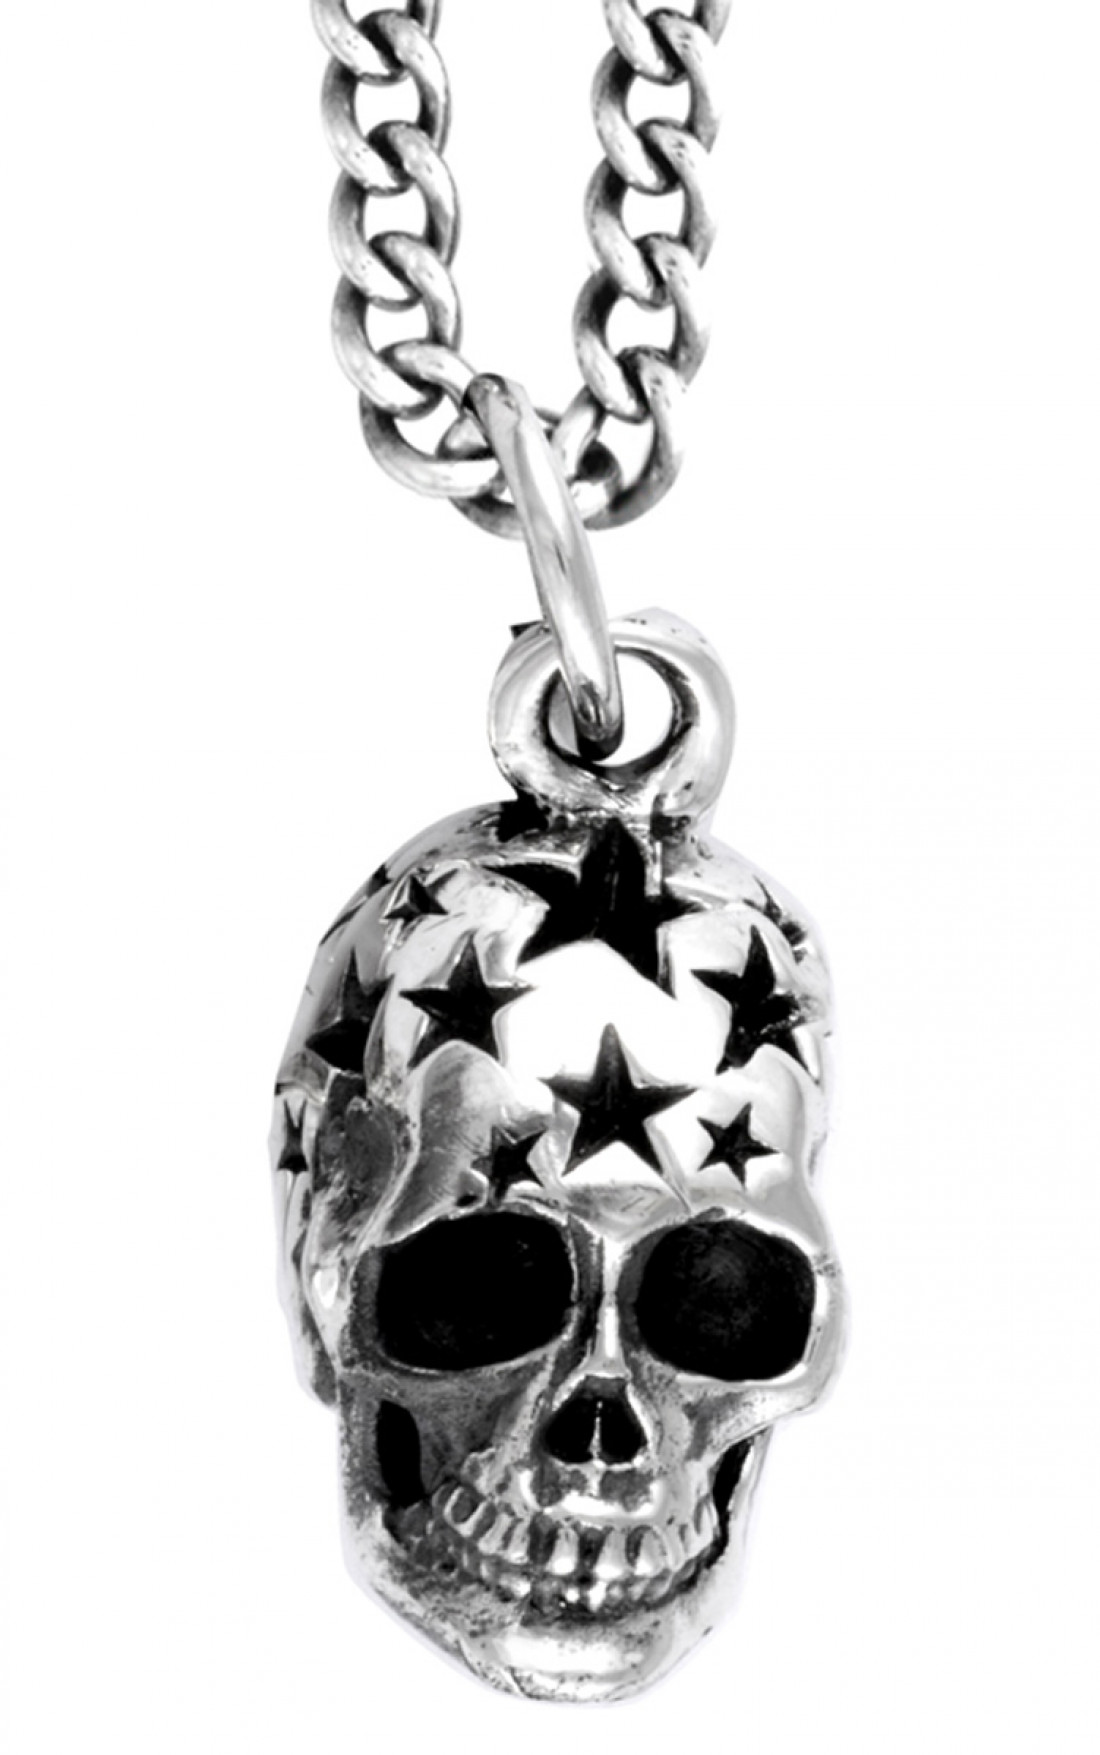 King Baby - Small All Star Skull Pendant (K10-5868)